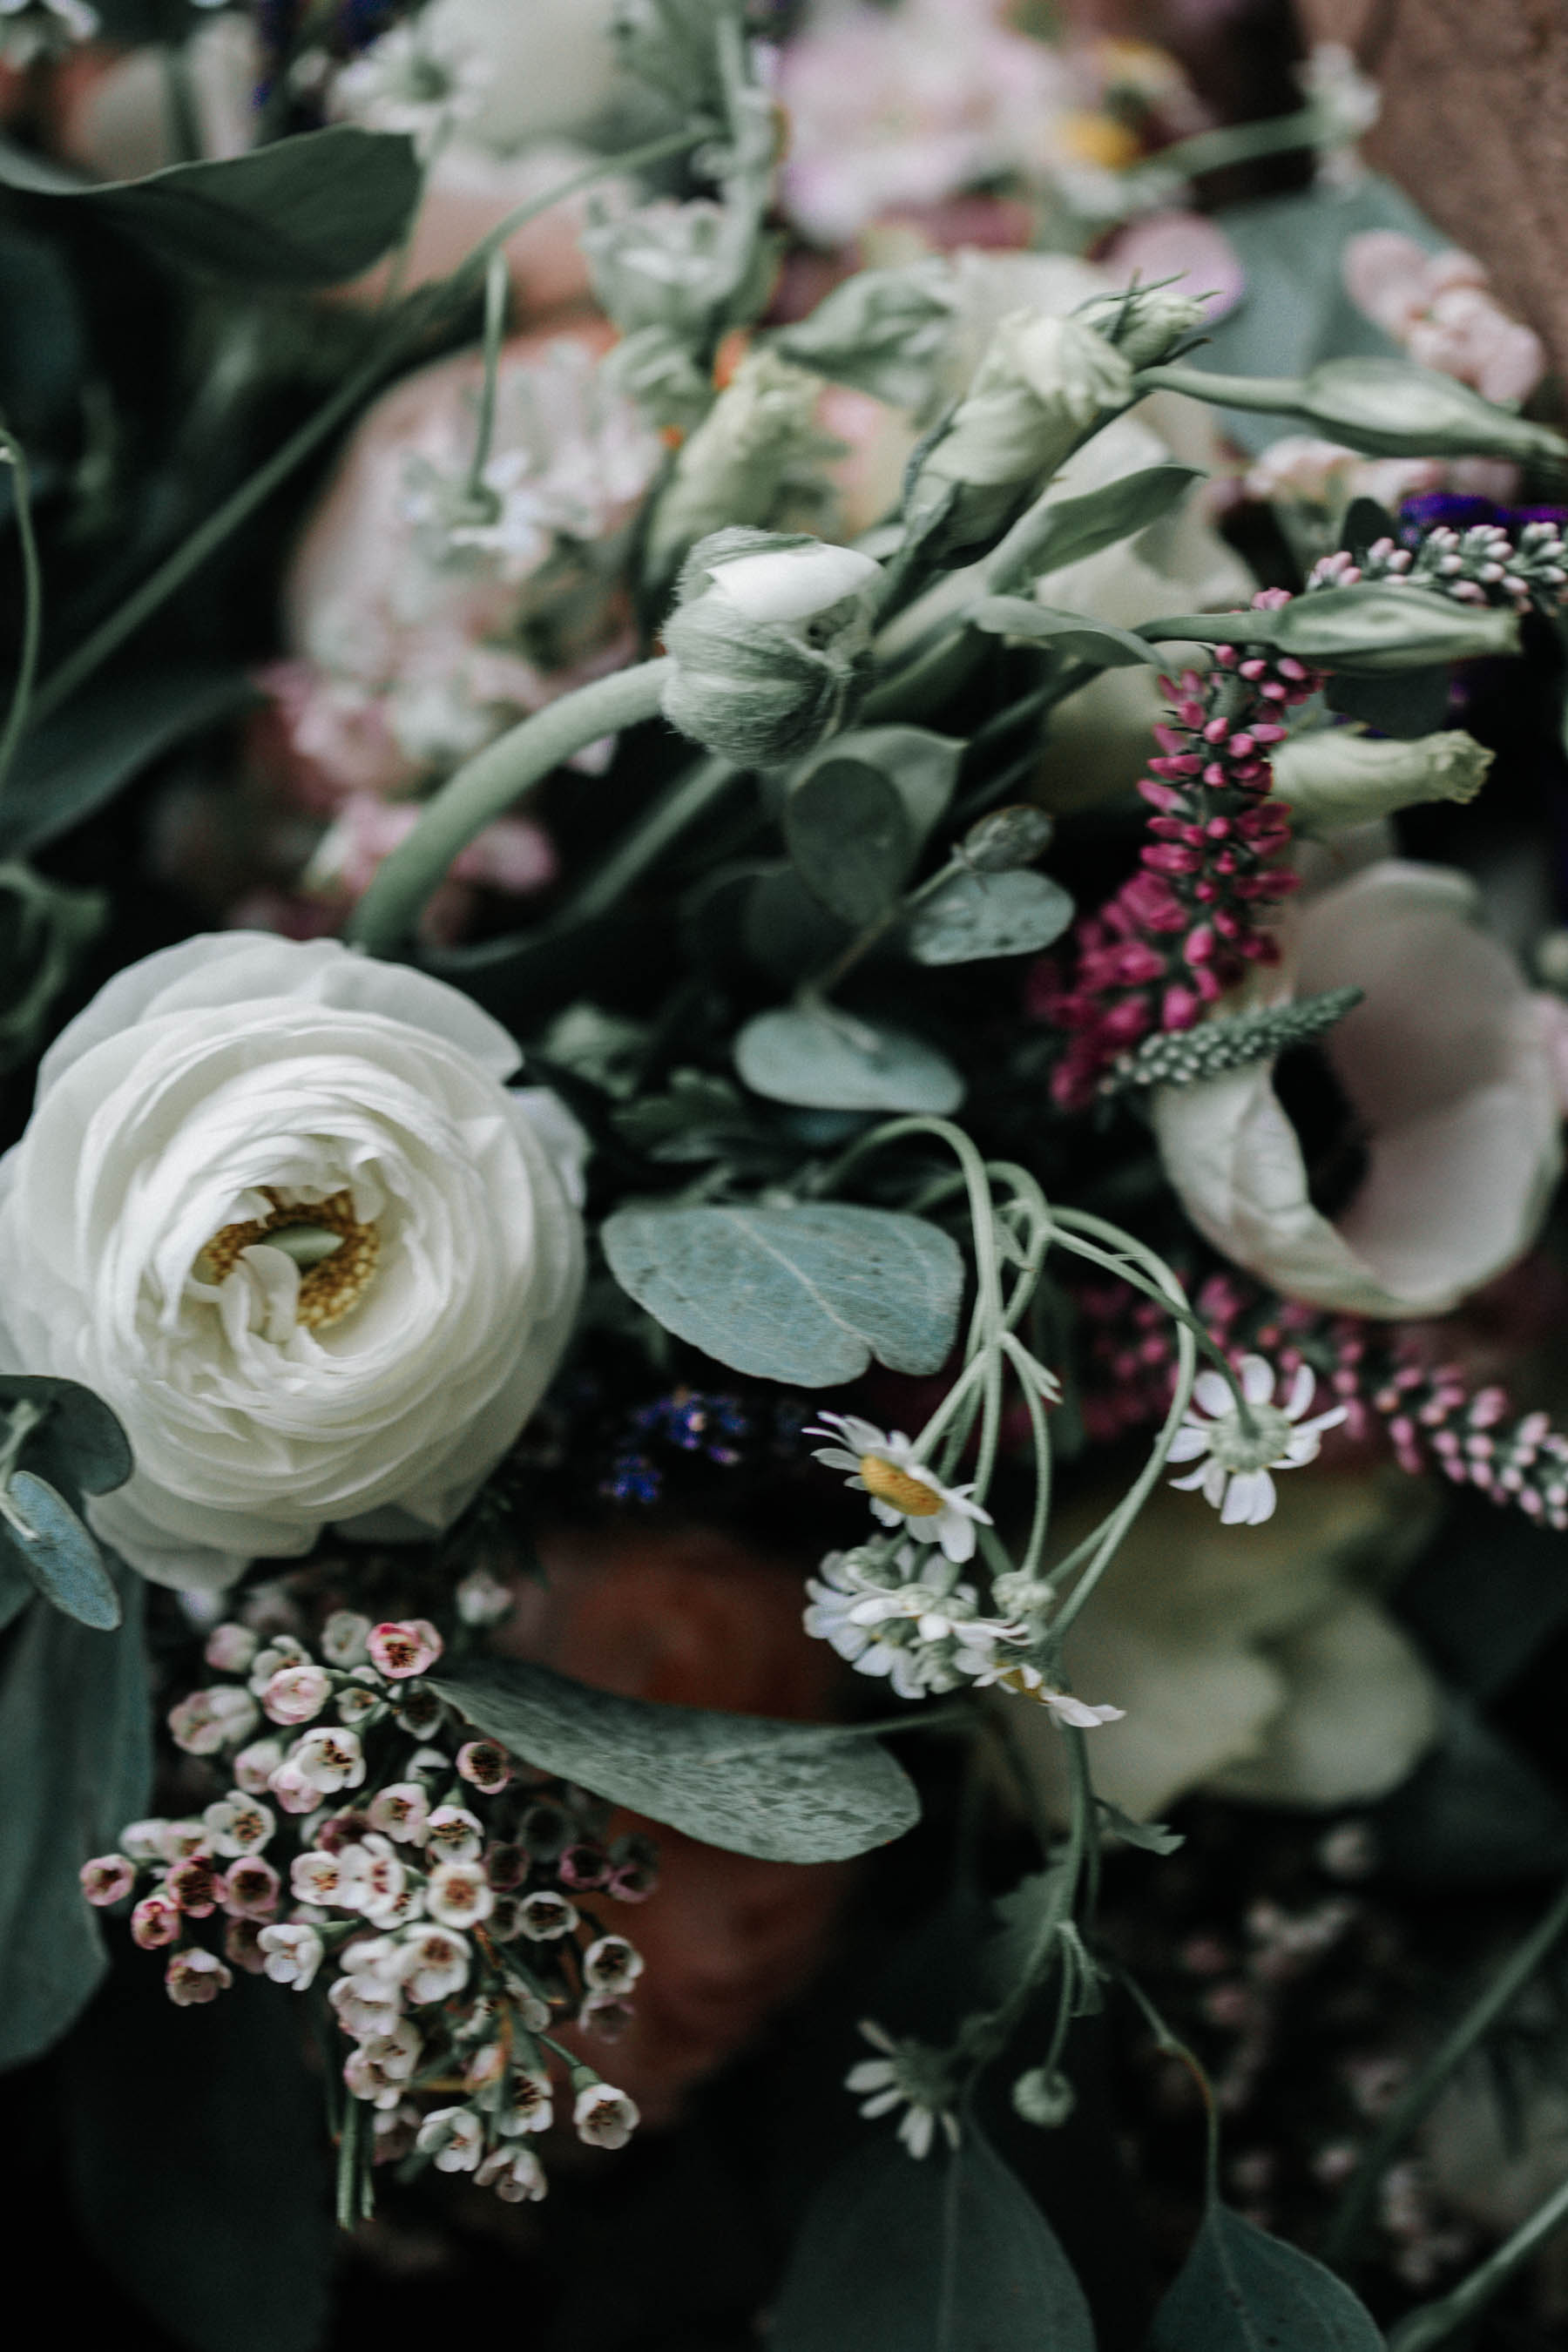 pictures-of-flowers-at-a-wedding.jpg